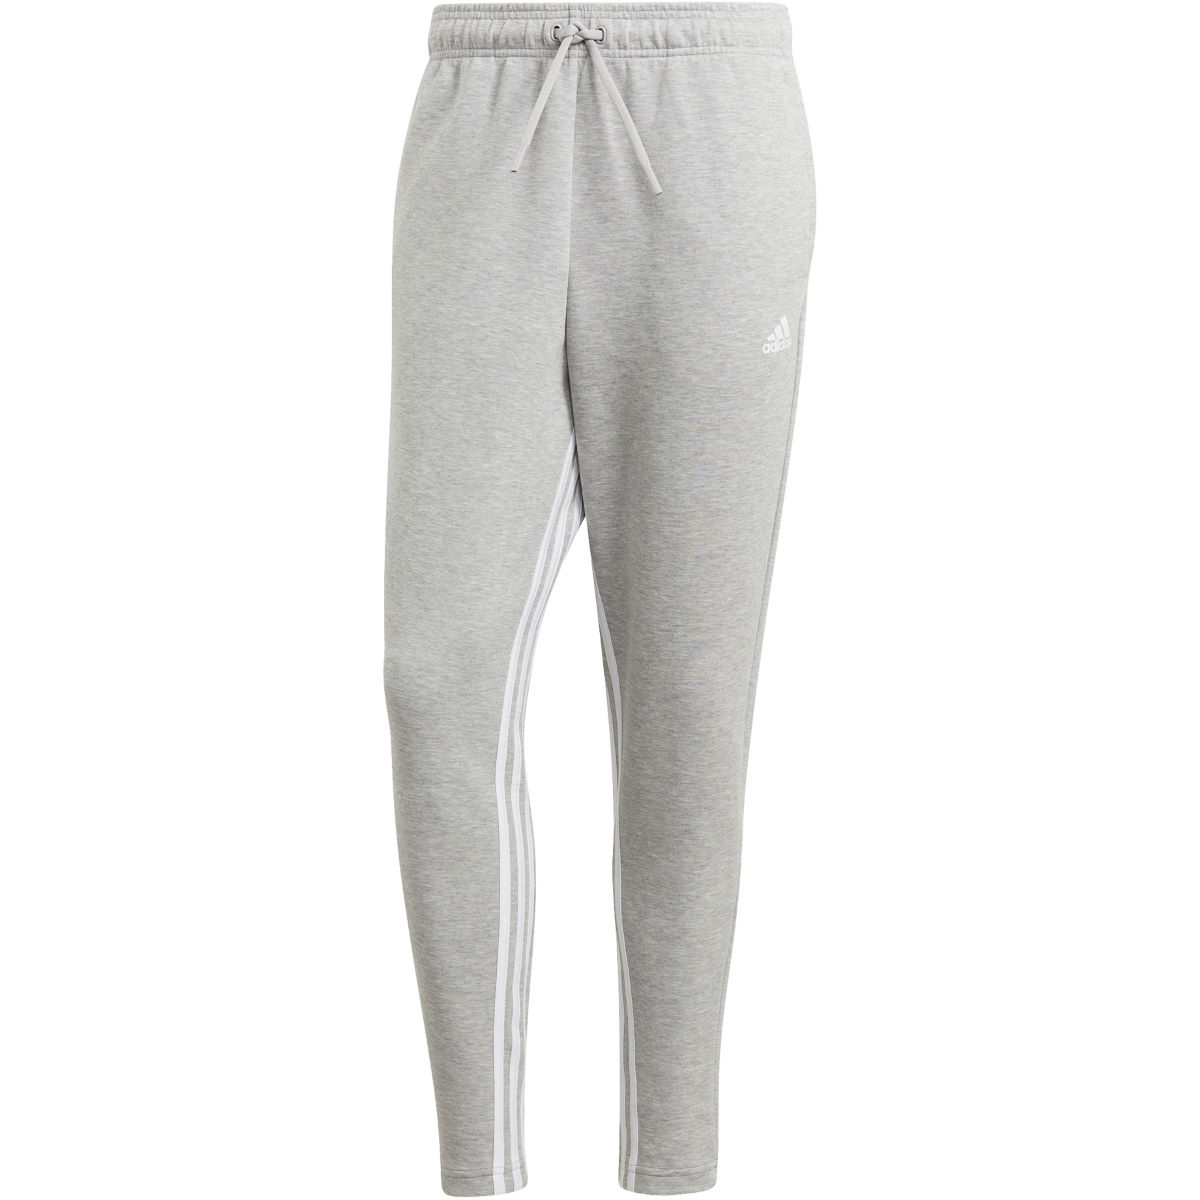 adidas Must Haves 3-Stripes Tapered Pants   Tights